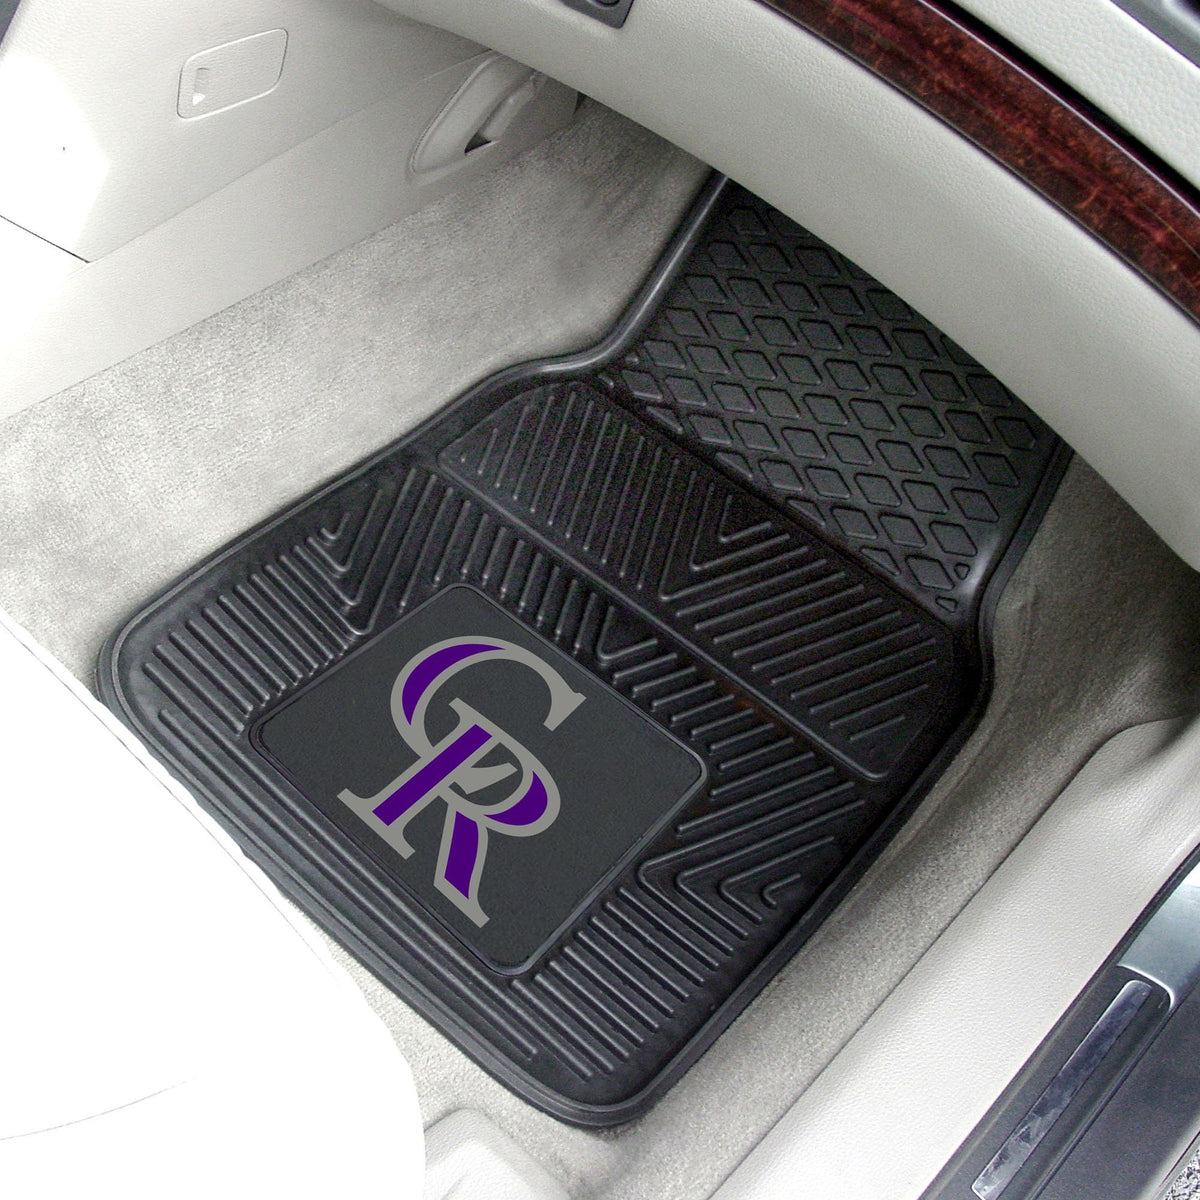 MLB - Vinyl Car Mat, 2-Piece Set MLB Mats, Front Car Mats, 2-pc Vinyl Car Mat Set, MLB, Auto Fan Mats Colorado Rockies